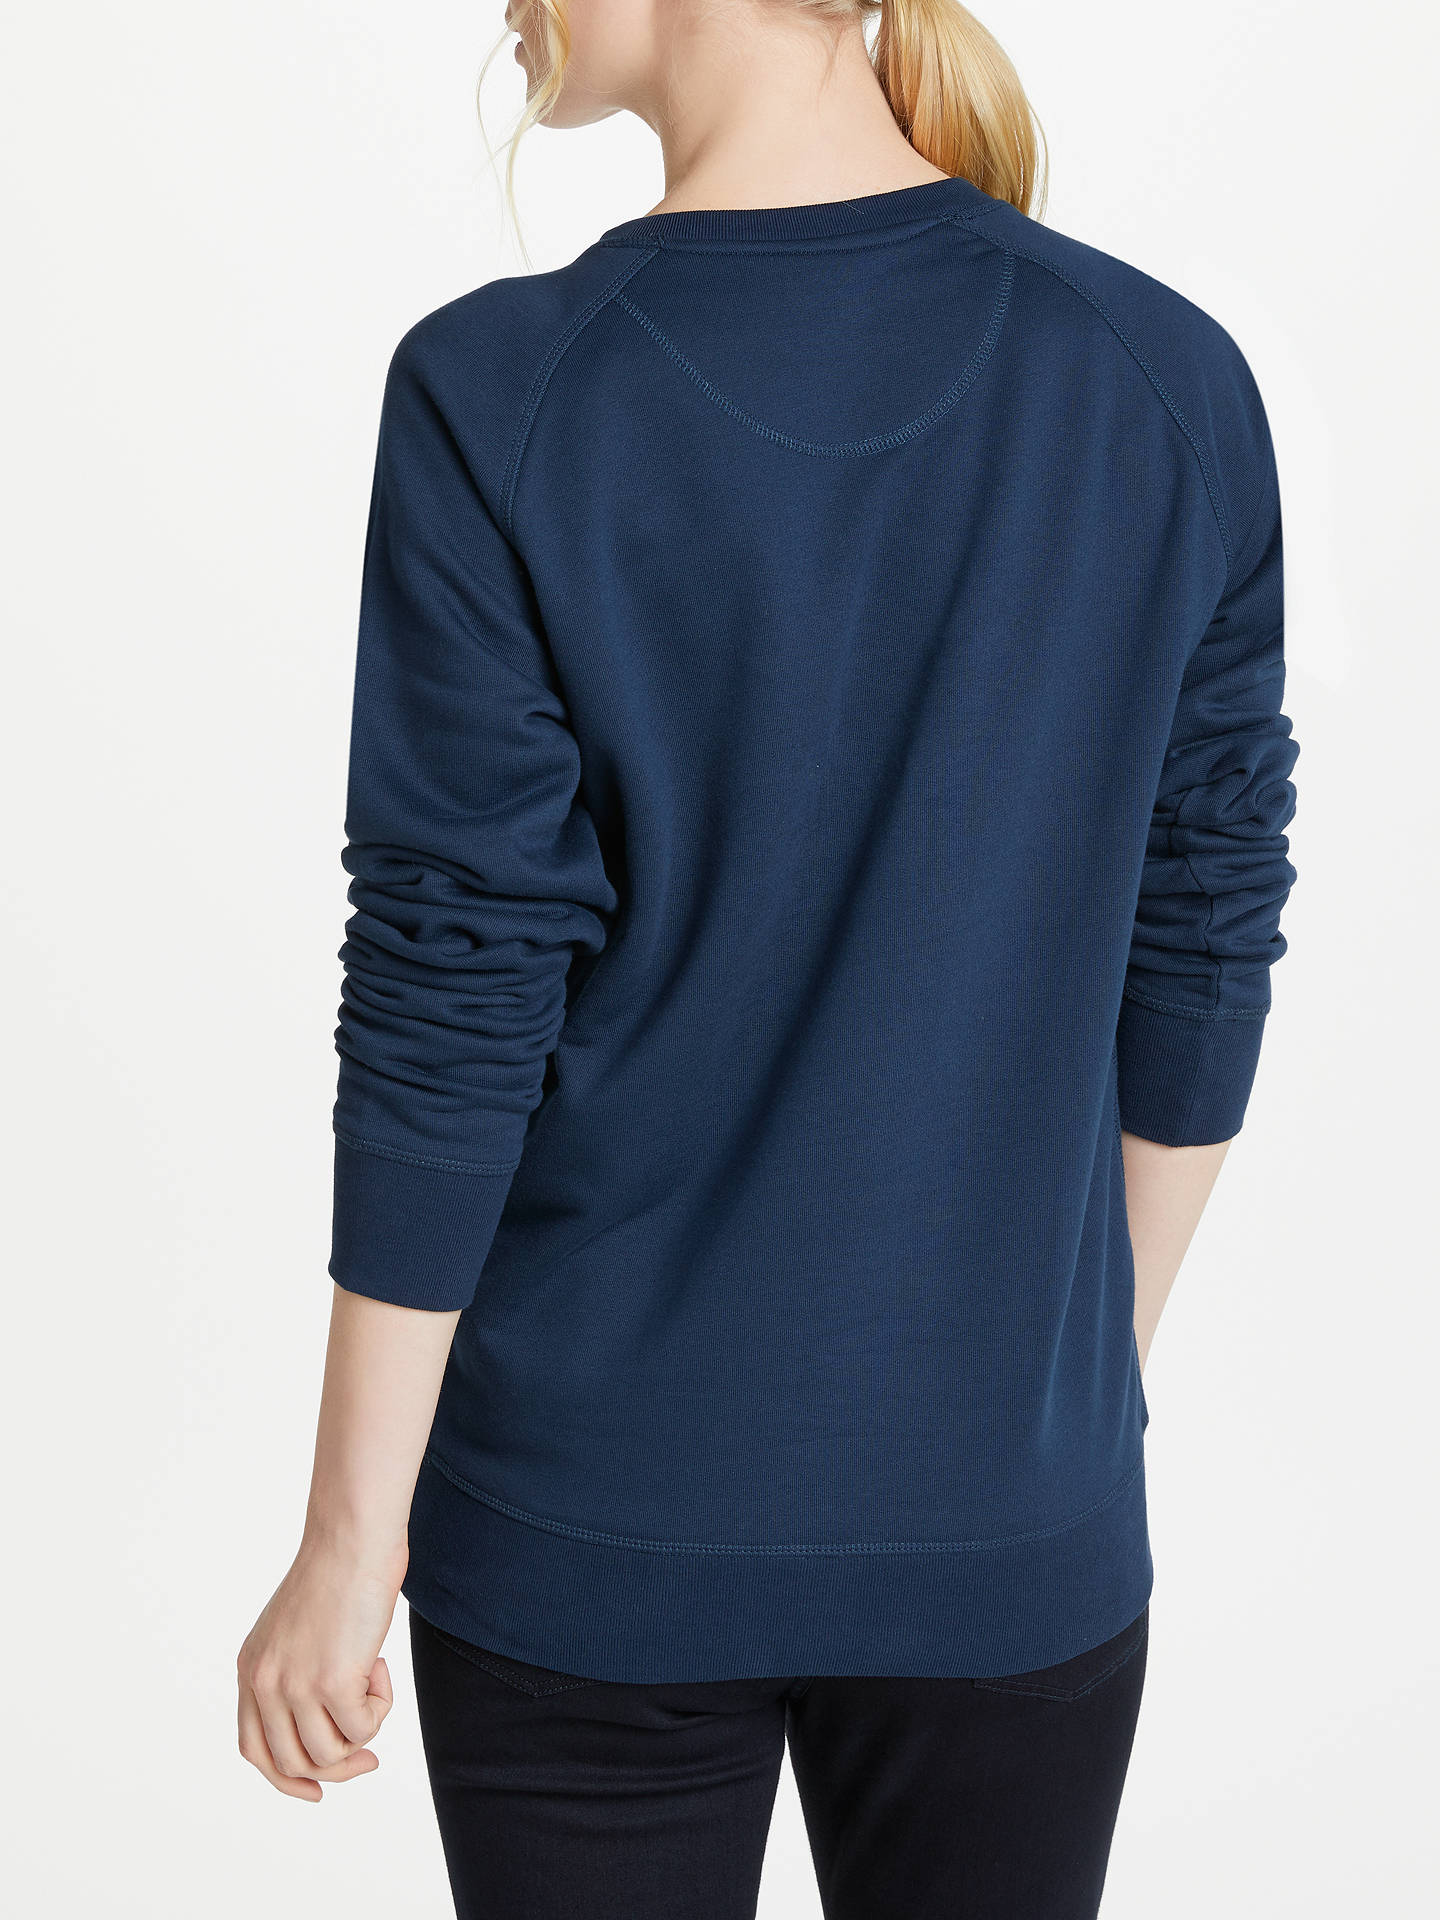 BuySelfish Mother Mama Crew Neck Sweatshirt, Navy/Silver, S Online at johnlewis.com